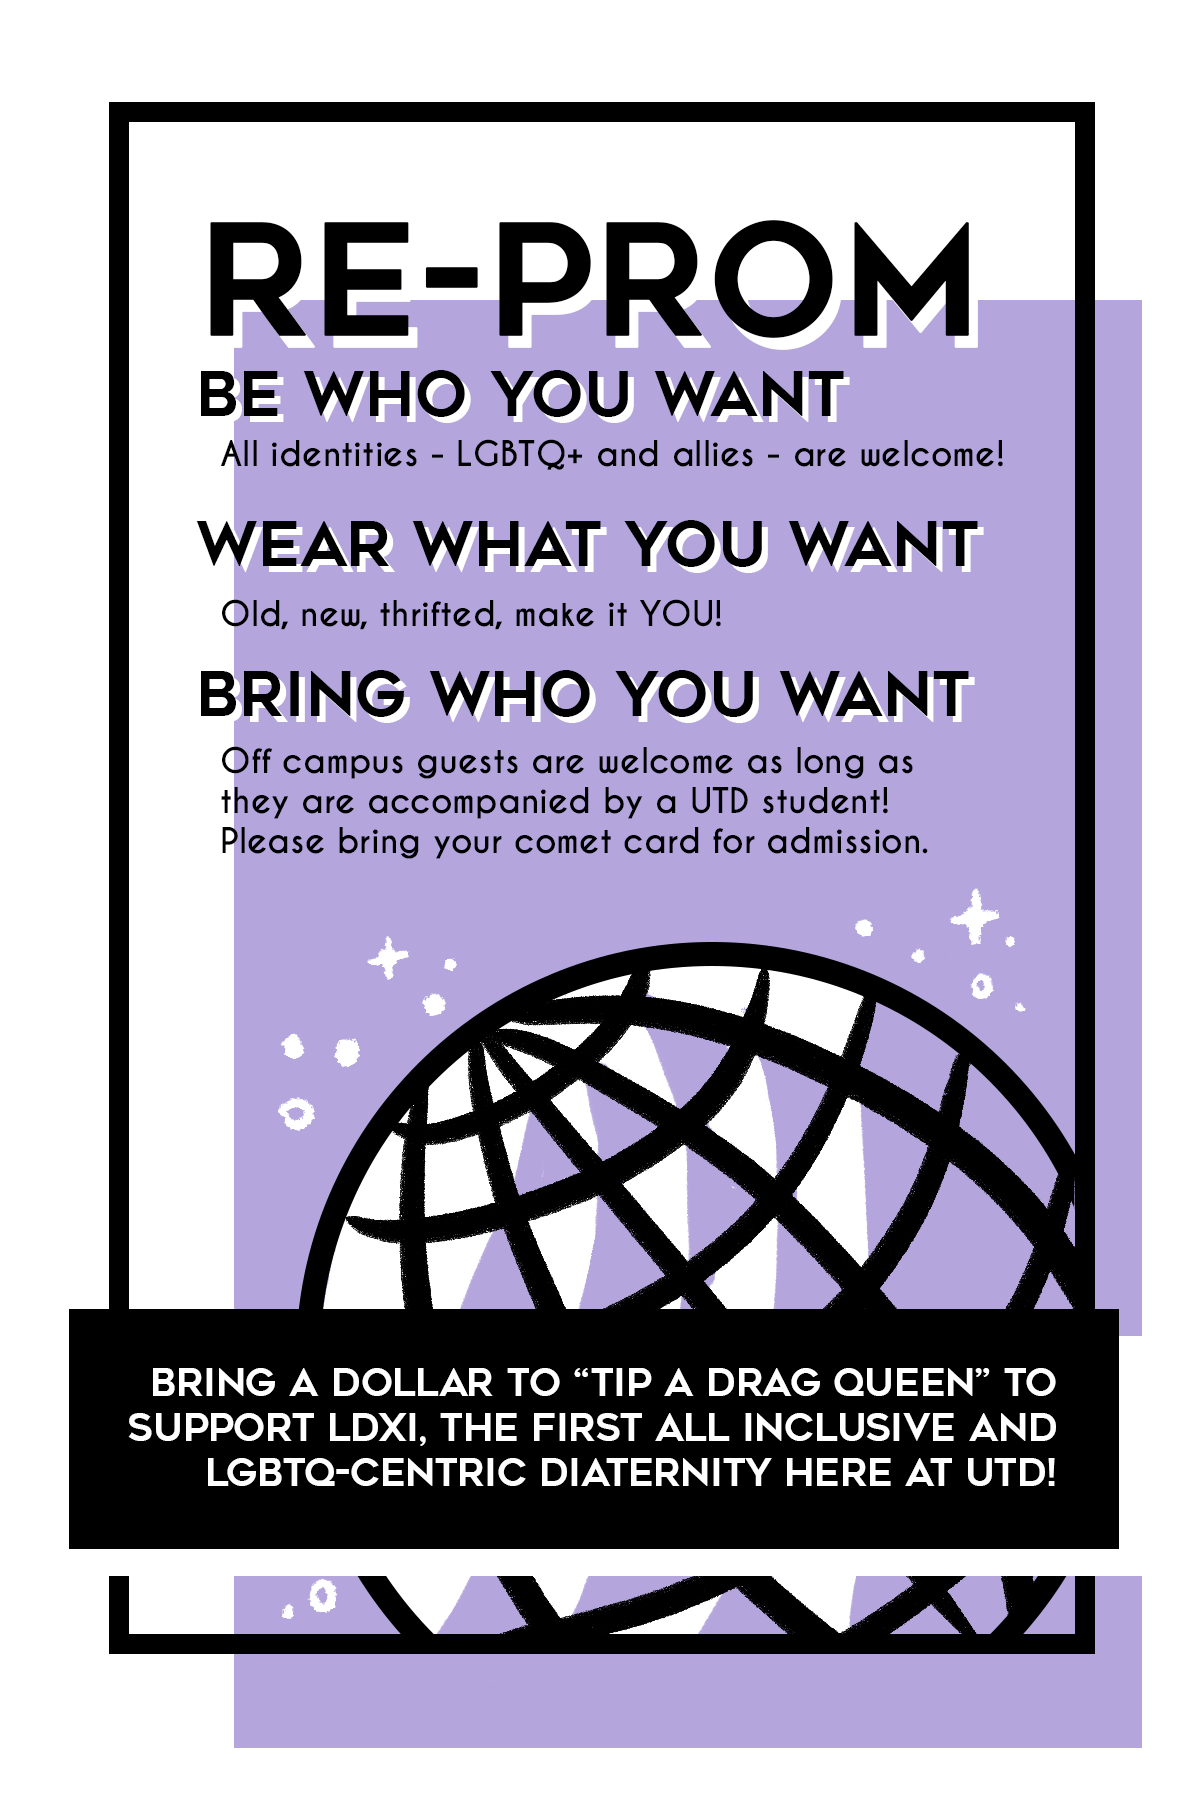 4 x 6 reprom flyer - back.png